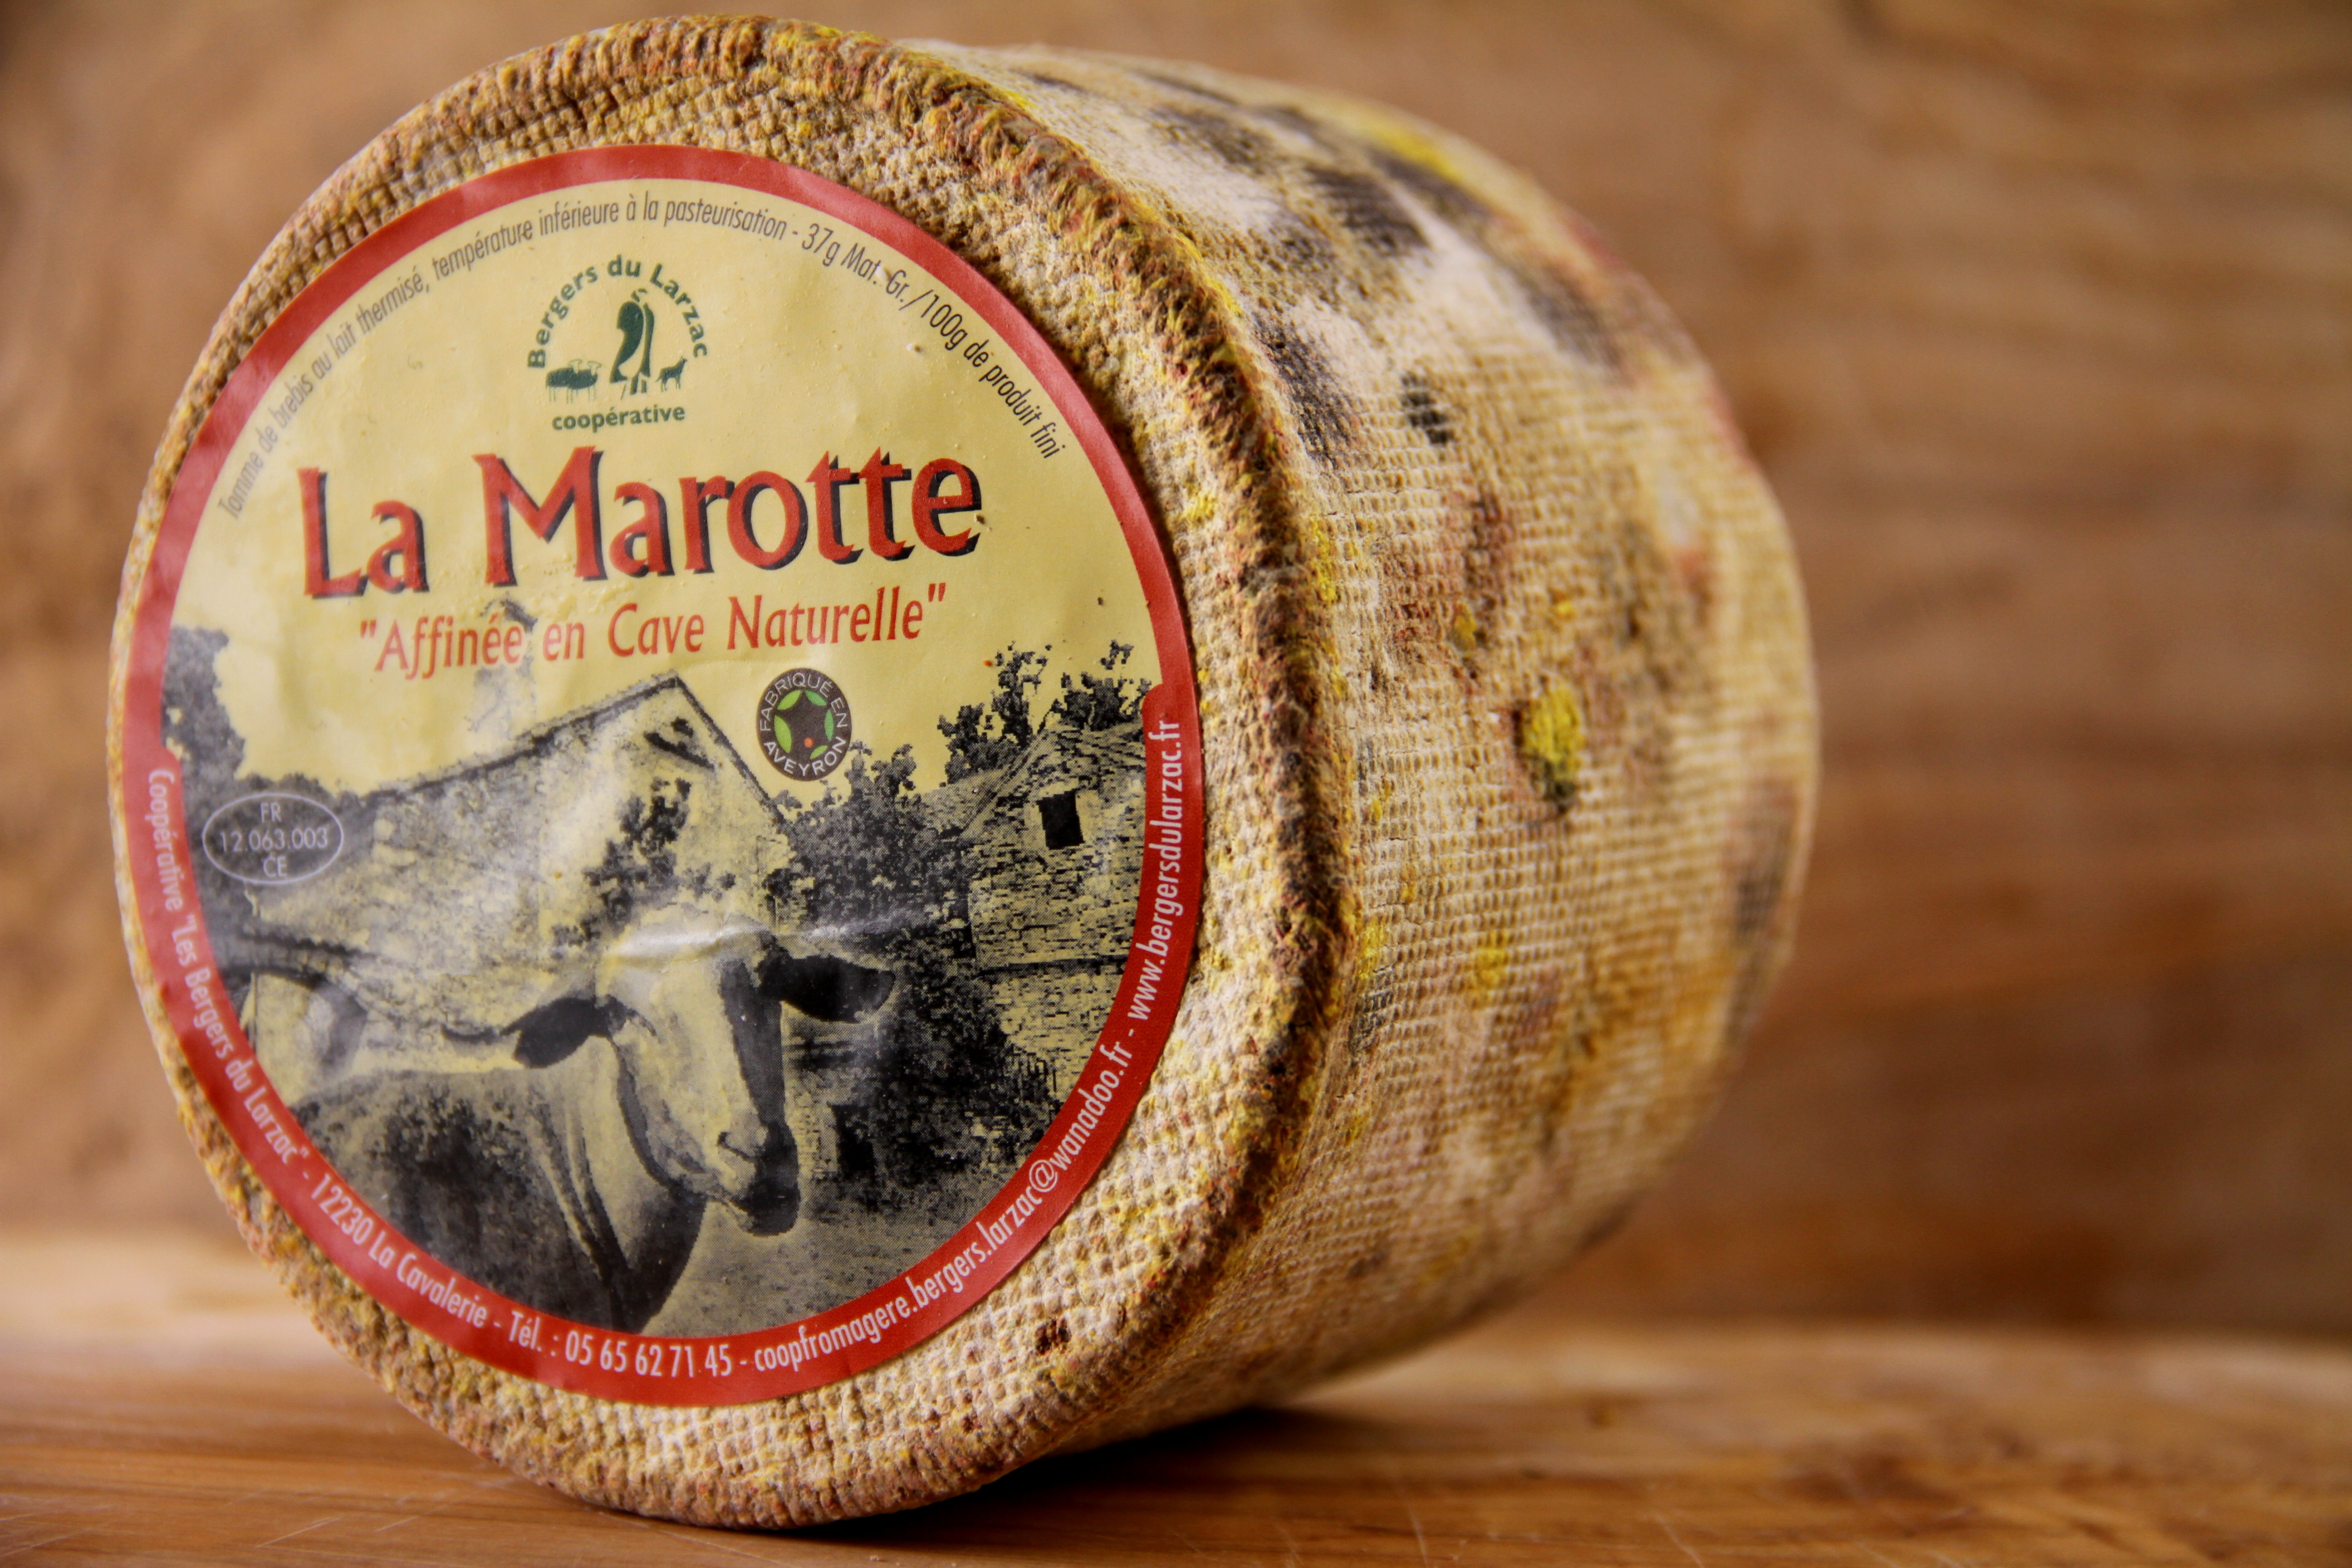 La Marotte, Yews milk cheese, hard, saltly and cave aged.  Can you usedin salads and good table chee